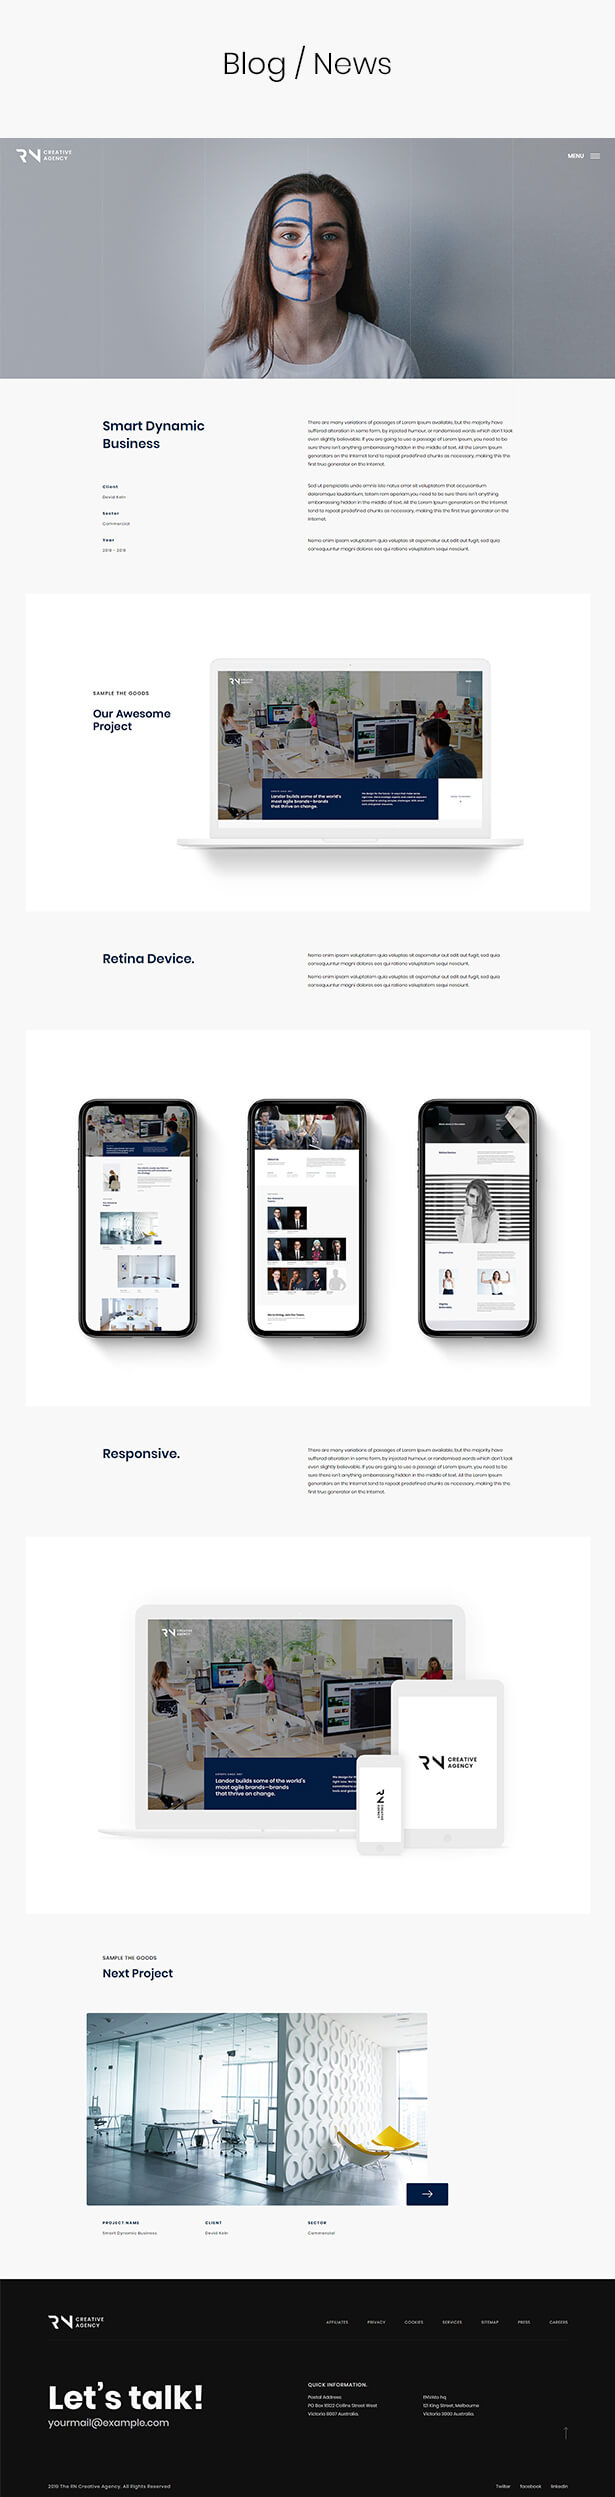 TheRN - Creative Agency React Gatsby Template - 5